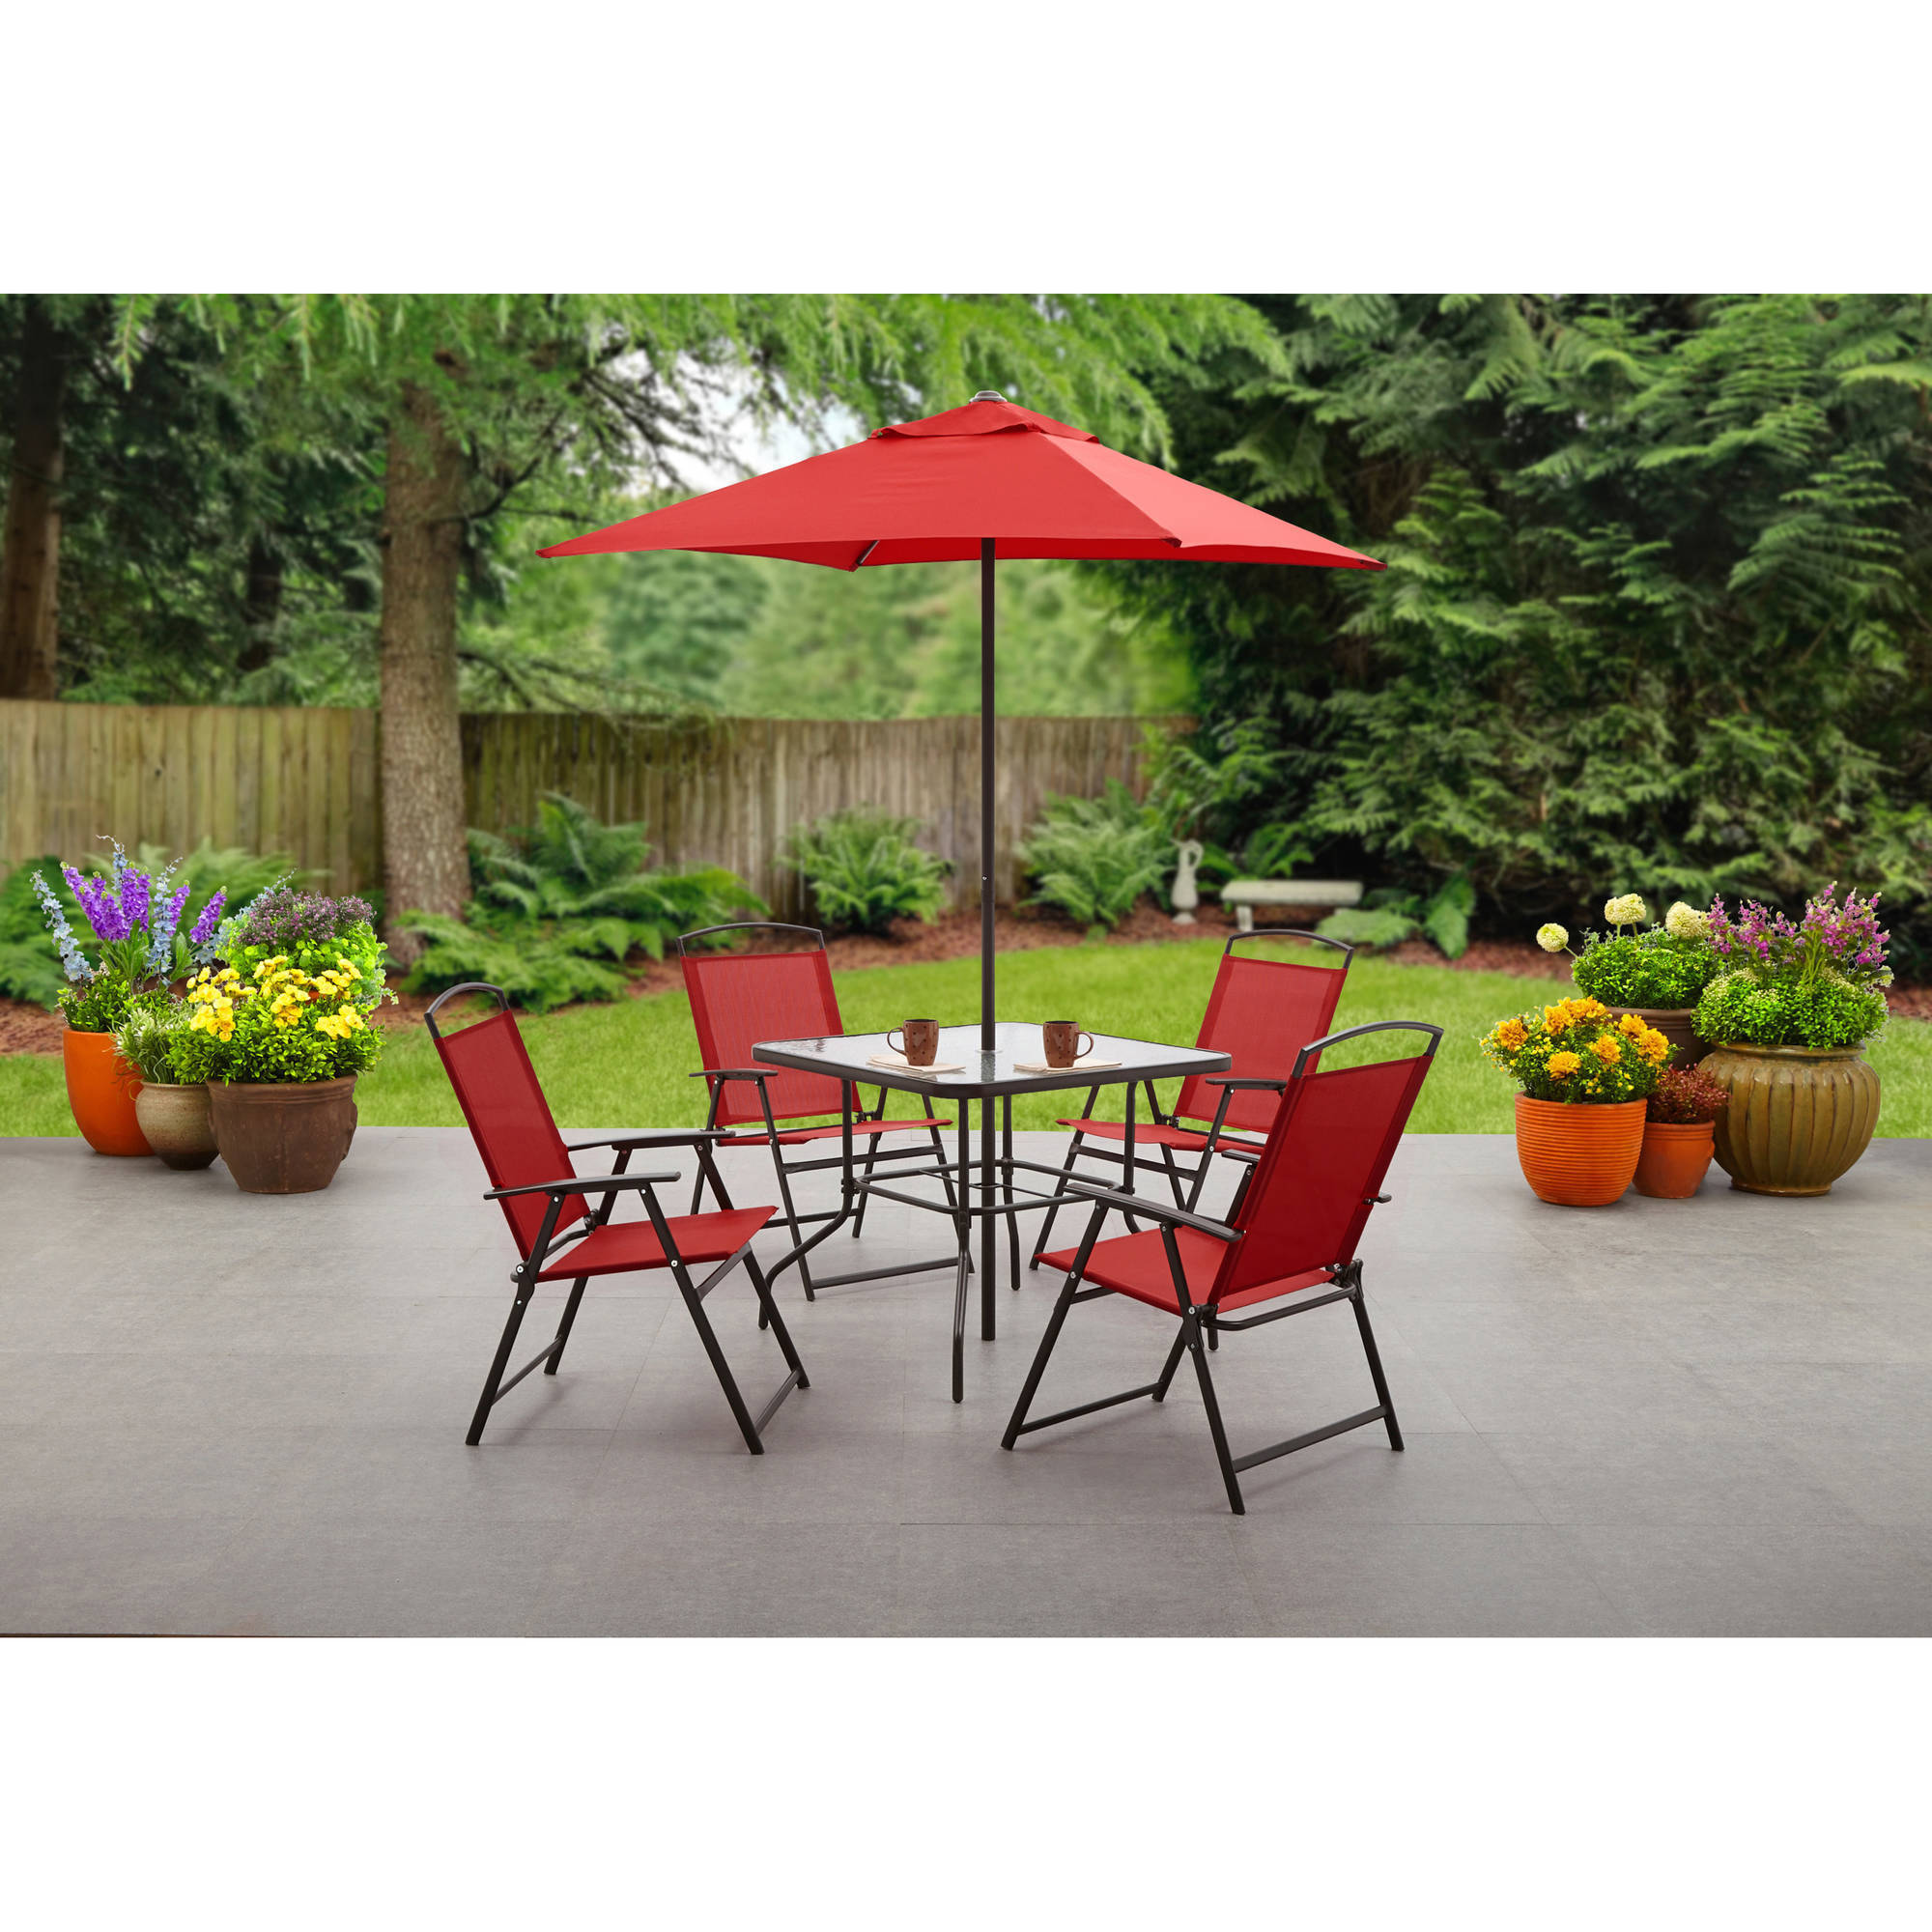 outdoor patio swing cover walmartcom